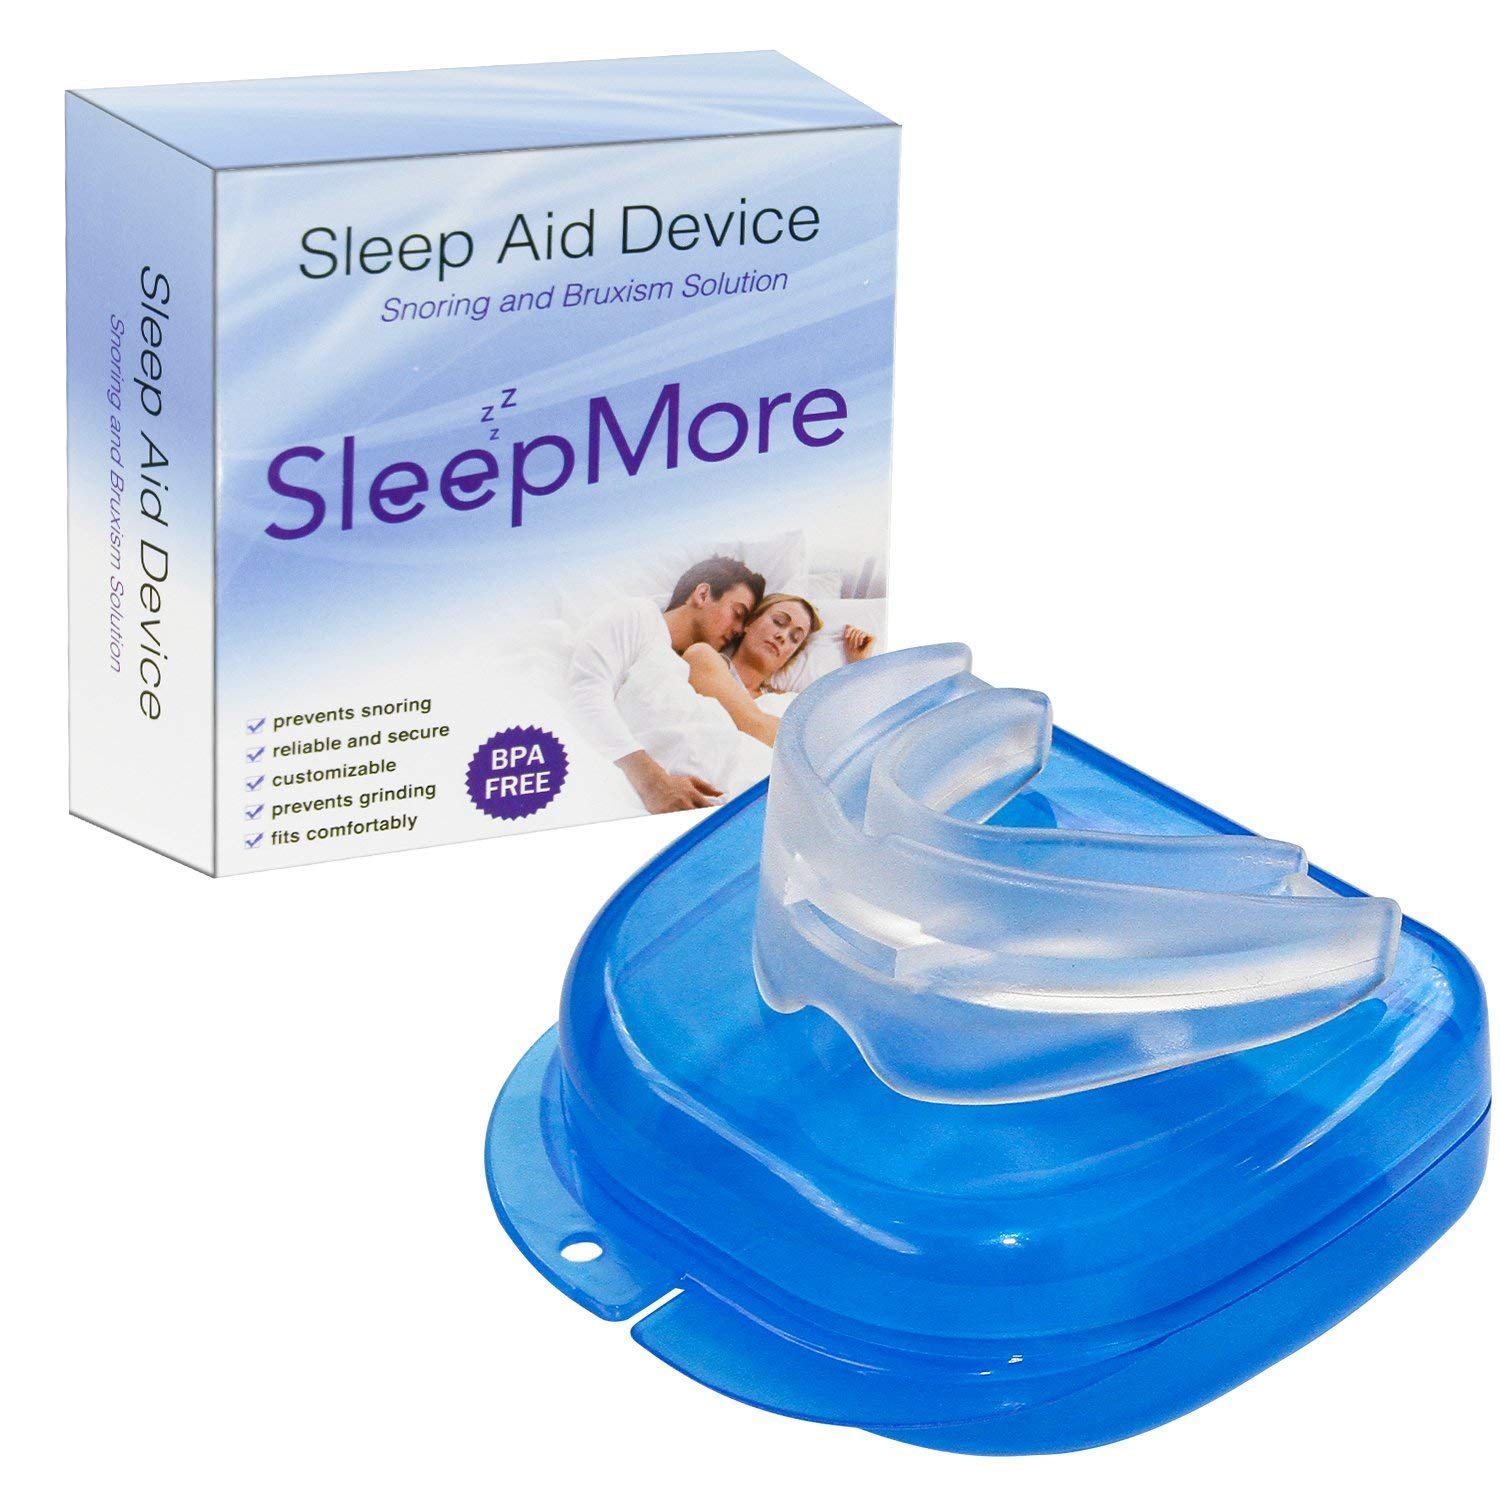 SleepMore Snore Stopper Mouthpiece-Snoring Solution Anti Snoring Devices, Sleep Aid Custom Fit Night Mouth Guard Bruxism and Snoring Solution by SleepMore (Image #1)